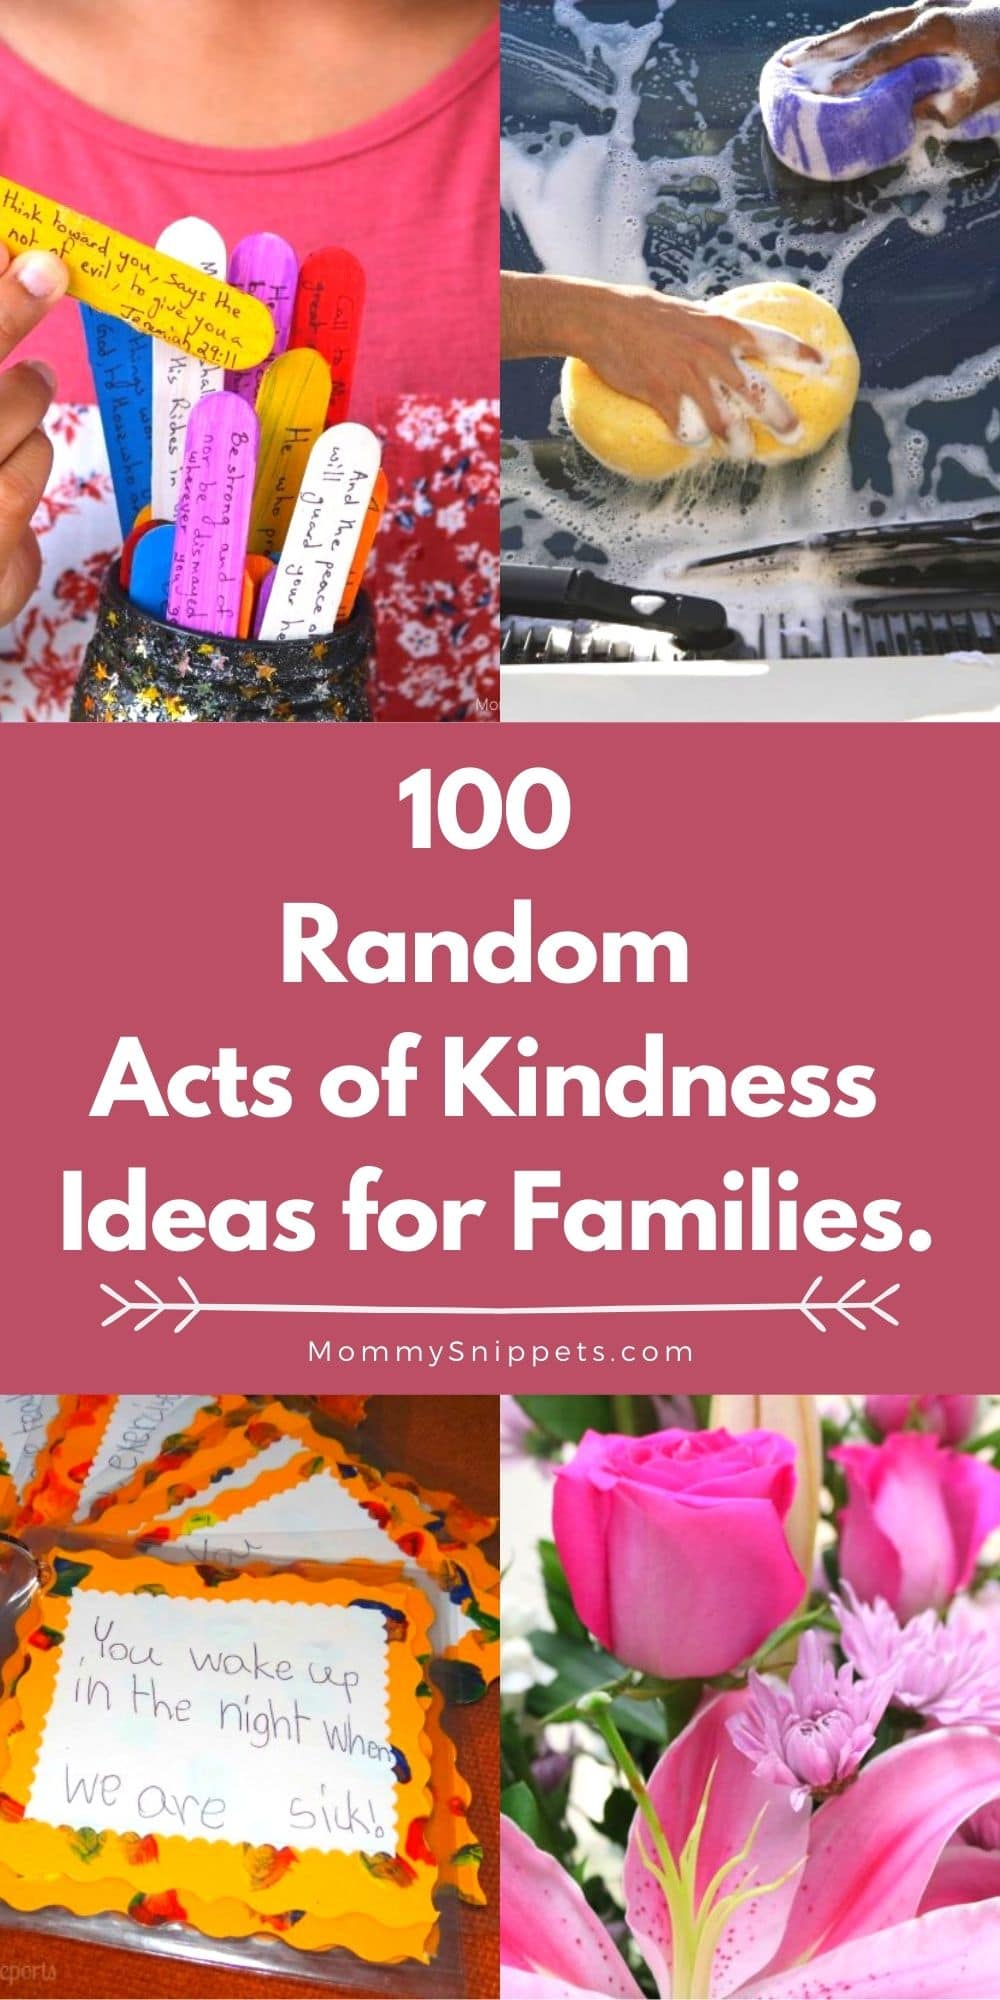 100 Random Acts of Kindness Ideas for Families- MommySnippets.com